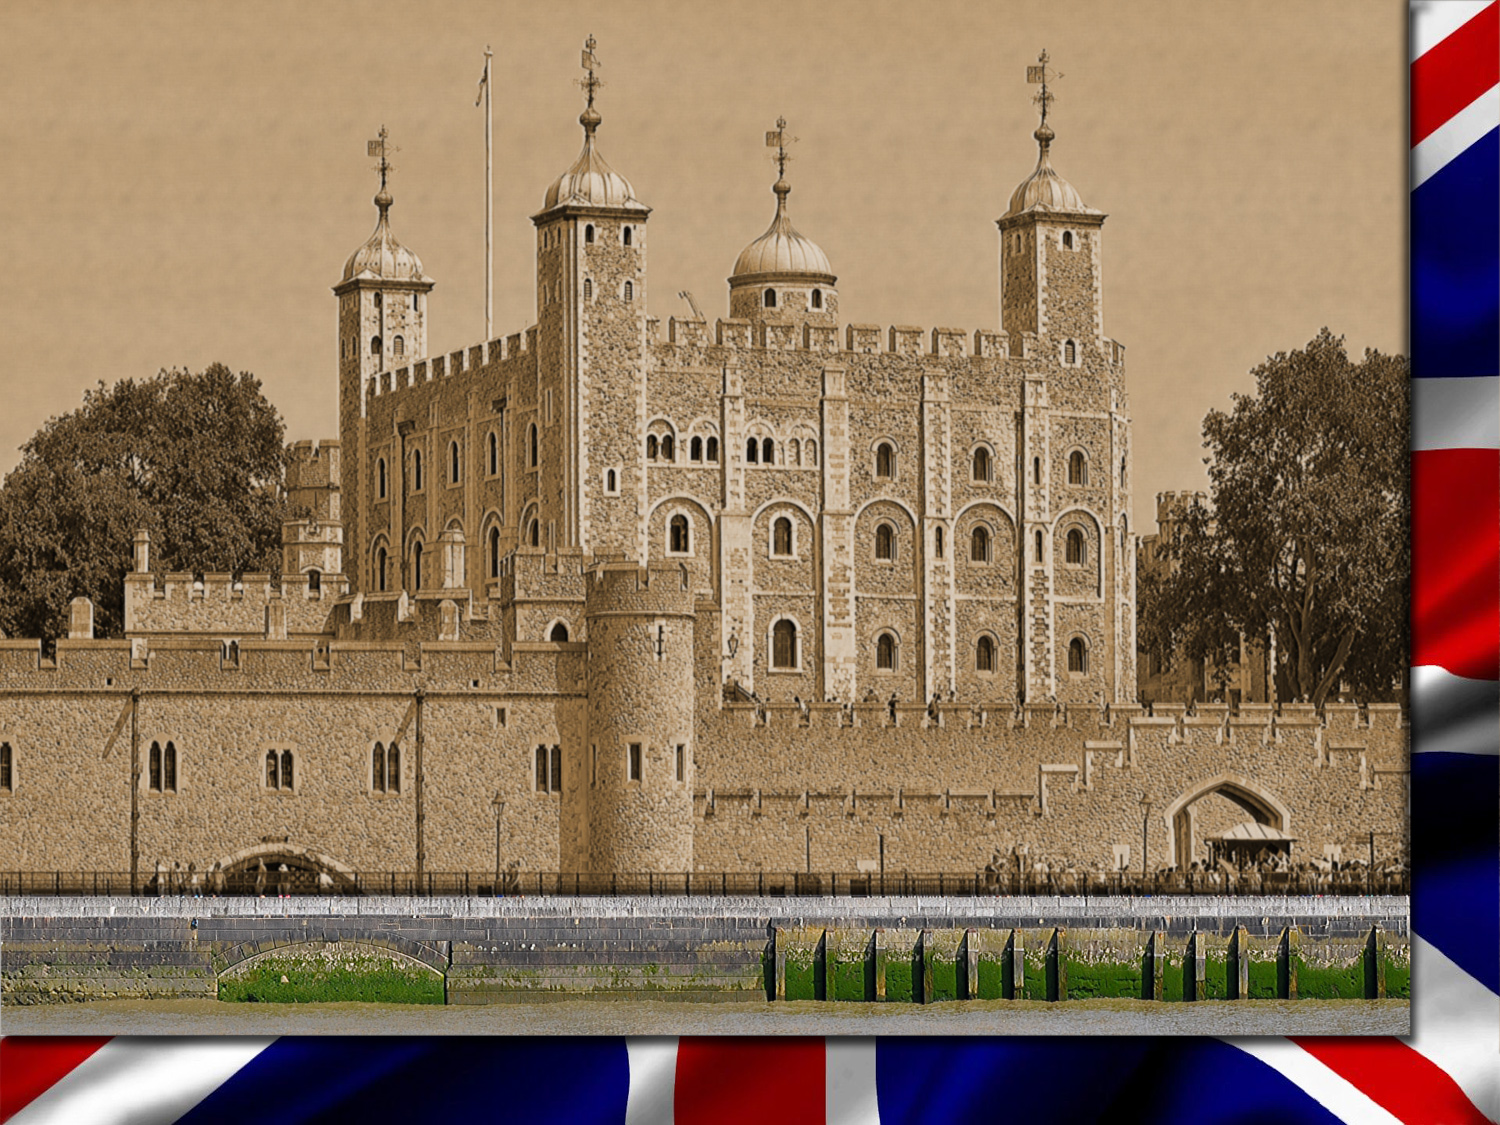 08_torony_tower_of_london_temze_thames_london_nagy-britannia_anglia_great_britain_england_utazas_europaba.jpg